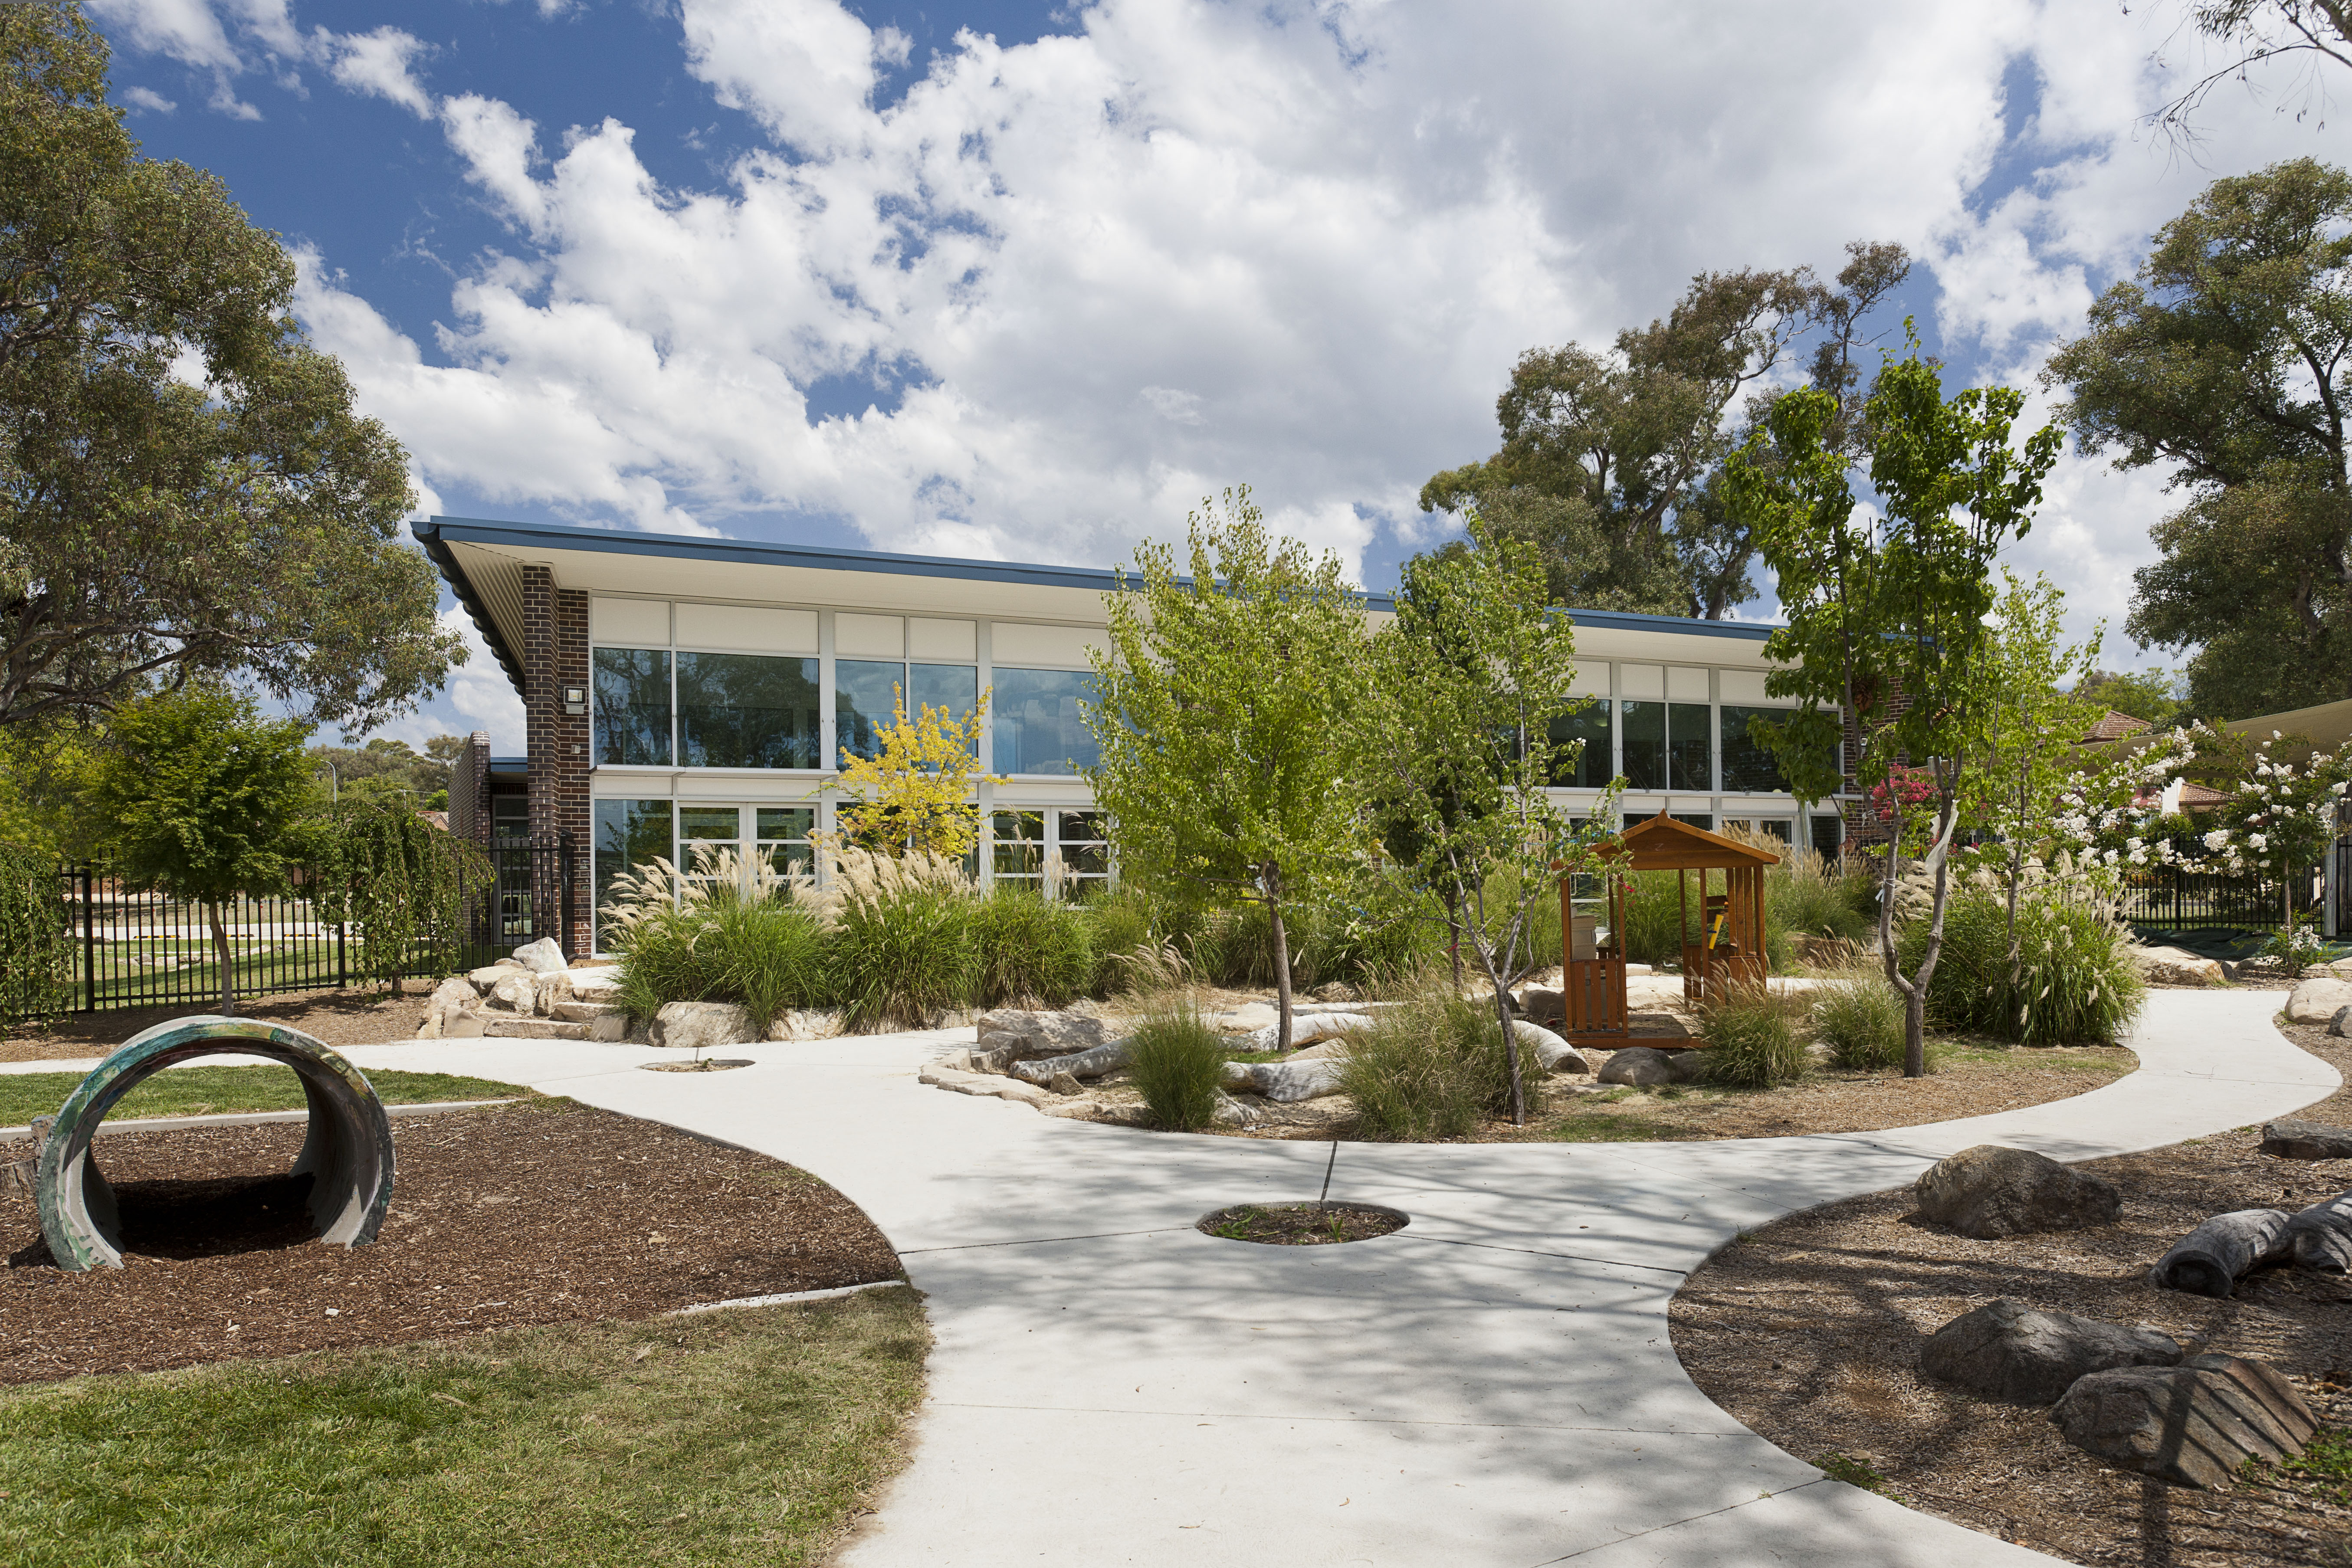 St Jude's Early Childhood Learning Centre